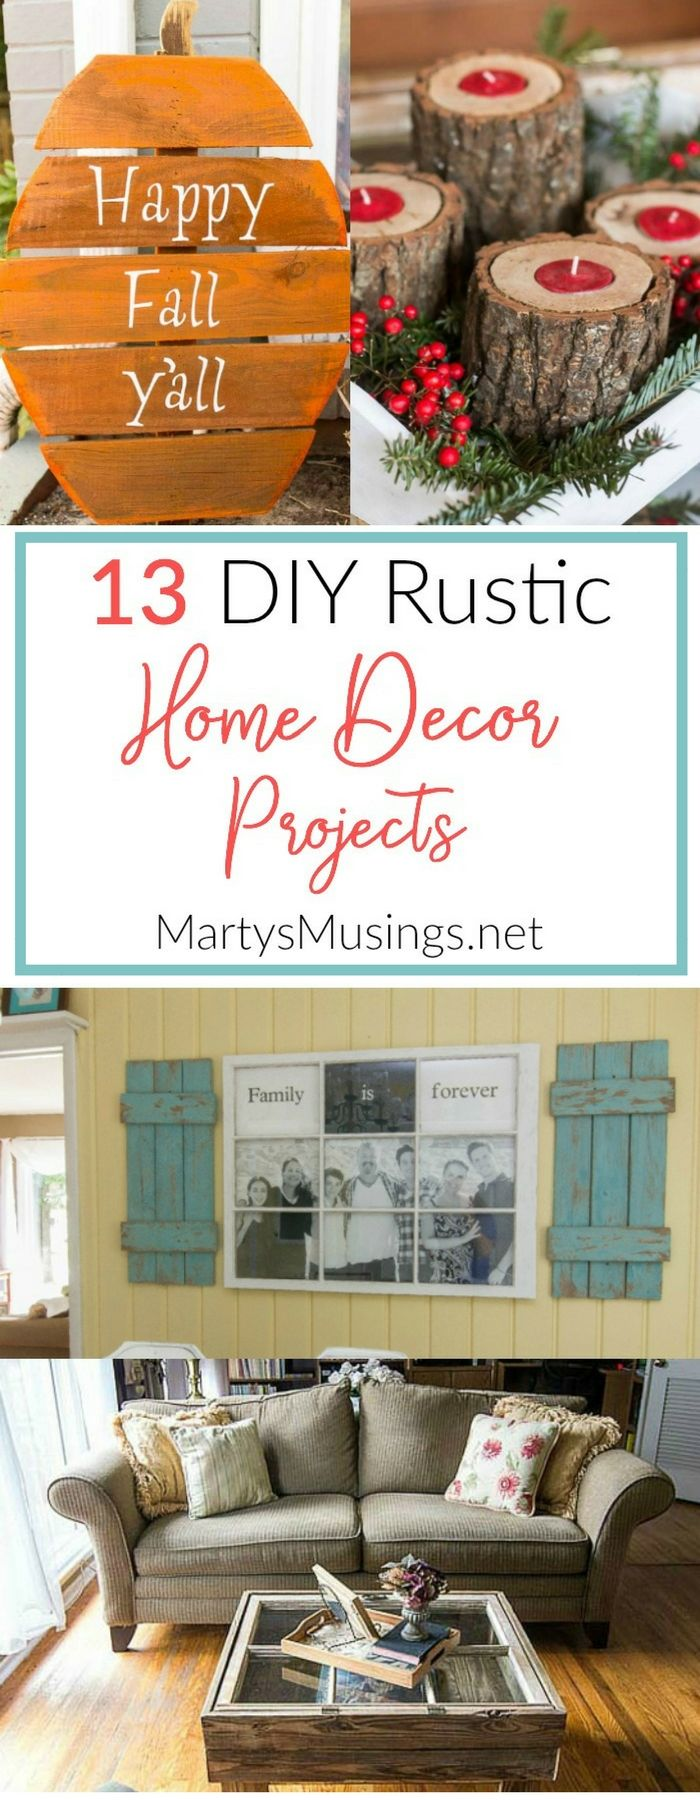 Best 25+ Budget home decorating ideas on Pinterest